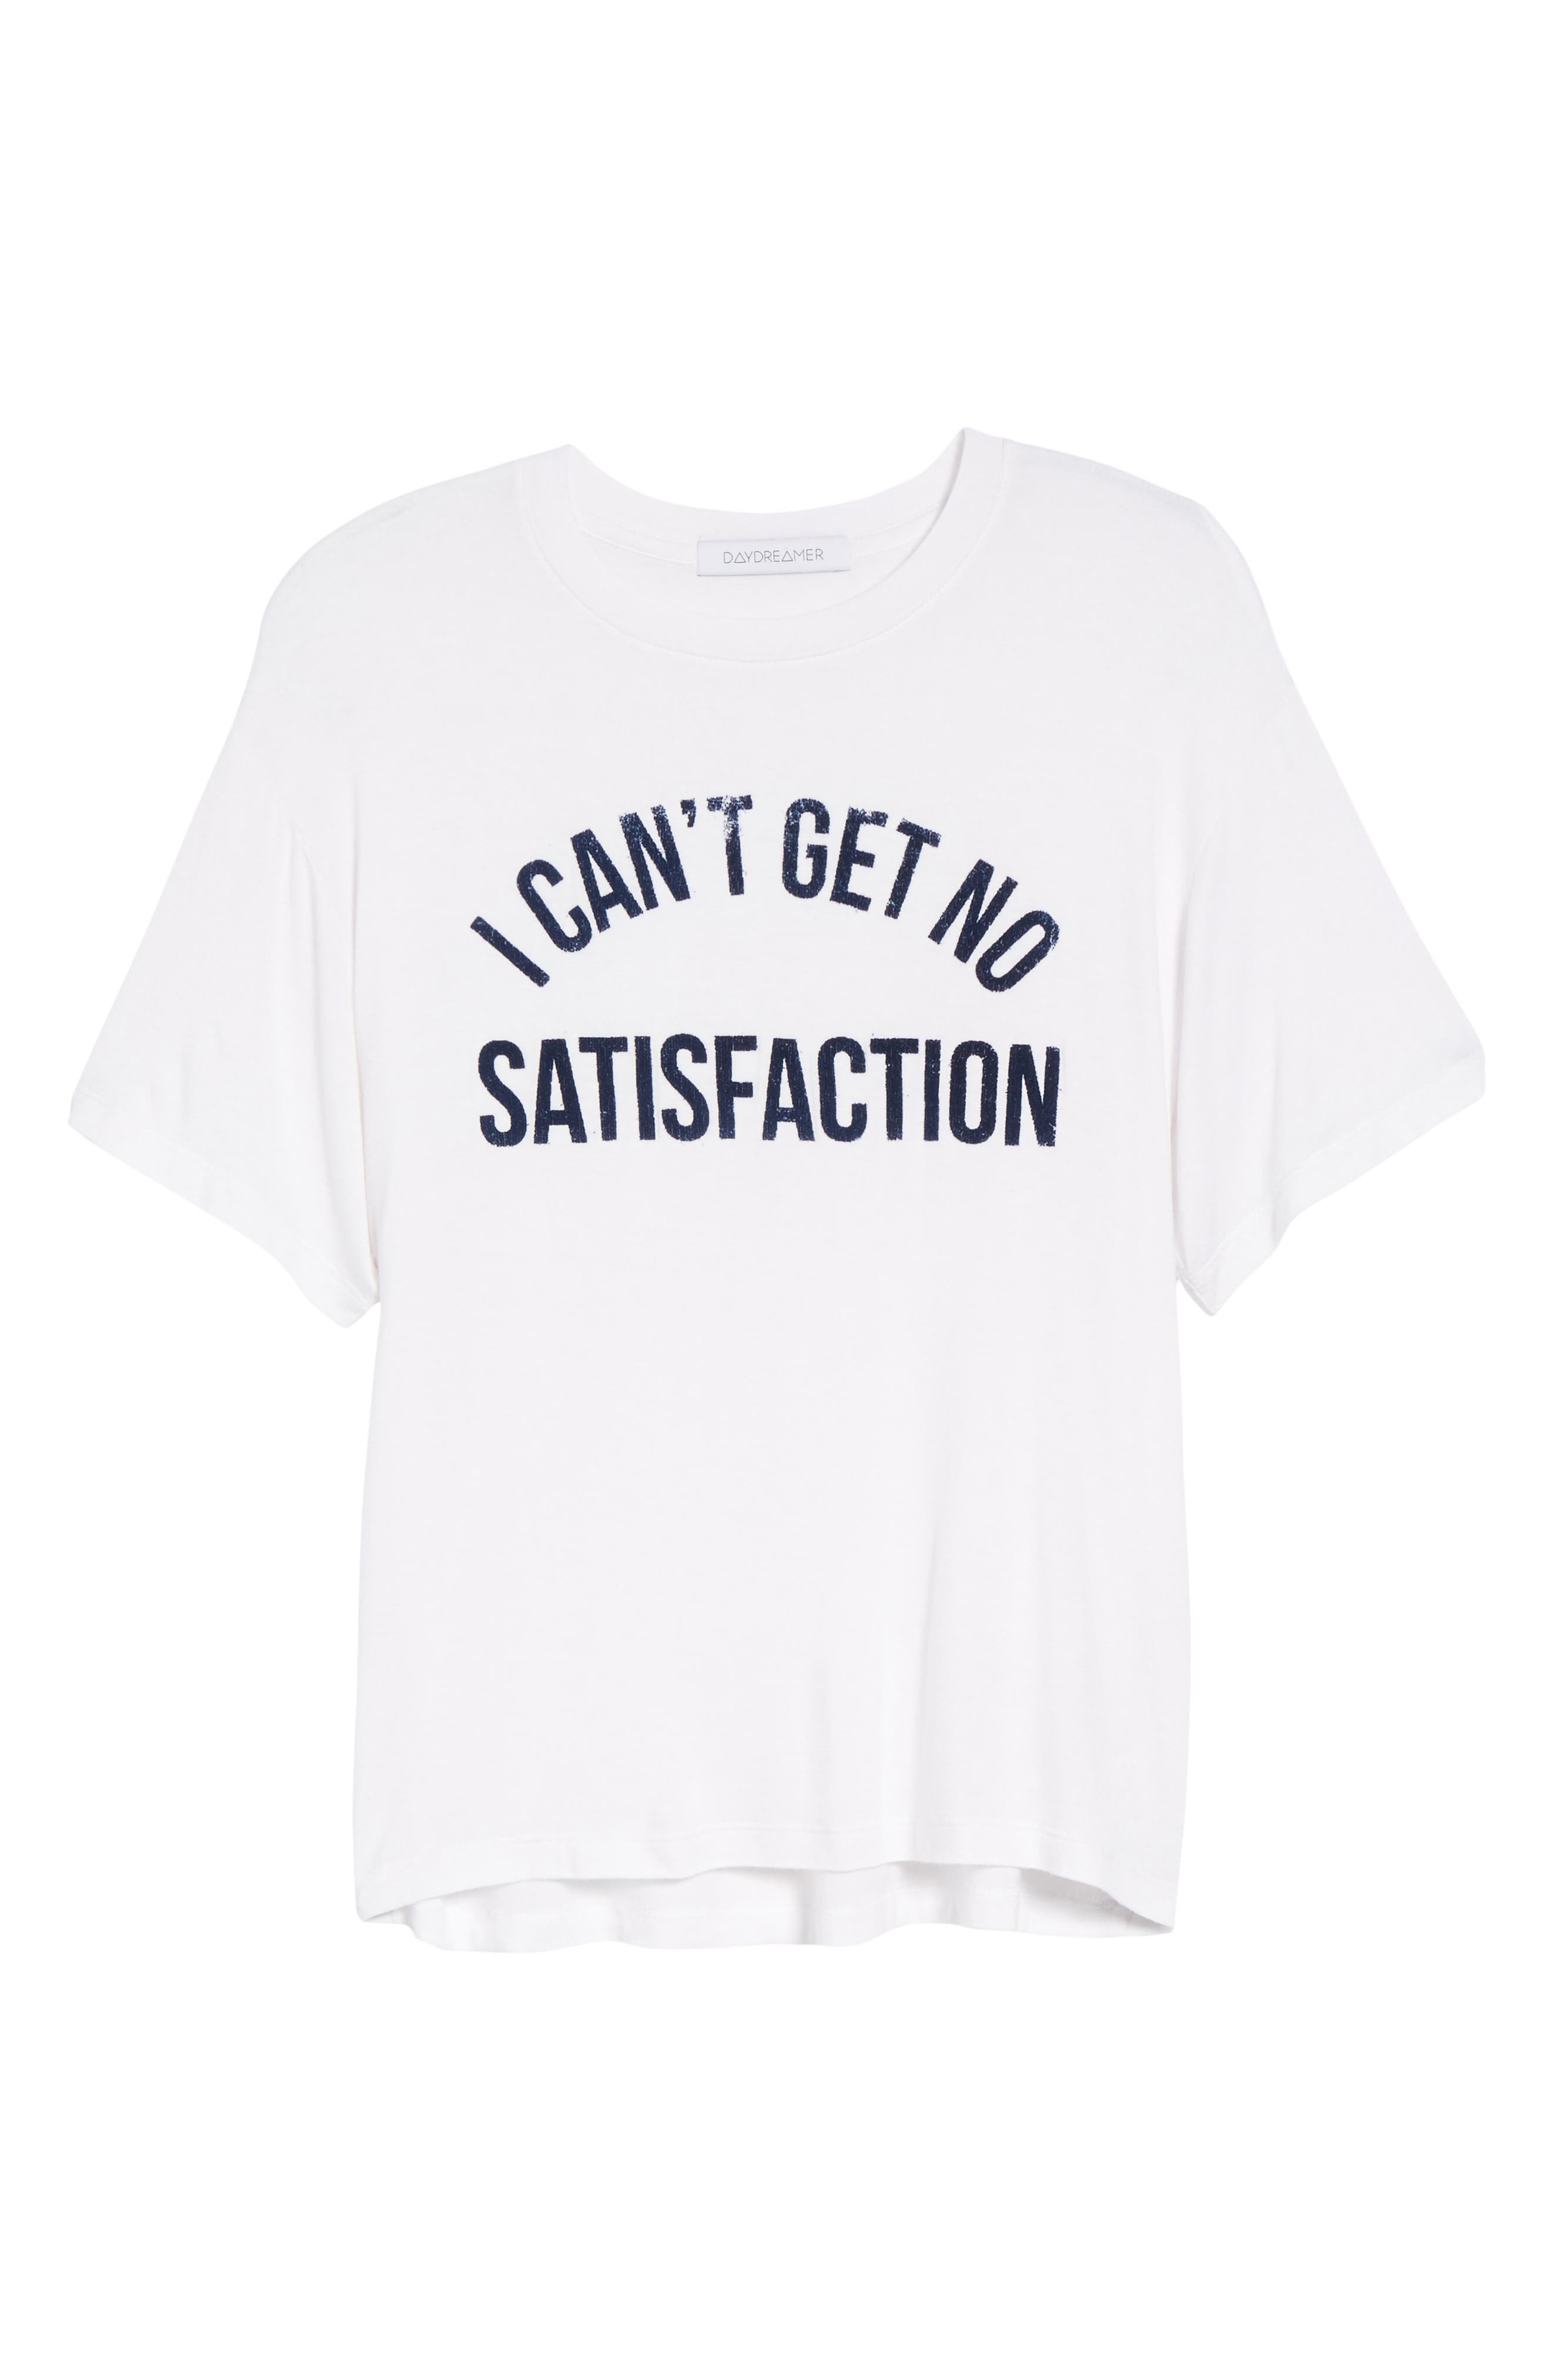 No Satisfaction Graphic Tee,                             Alternate thumbnail 6, color,                             White